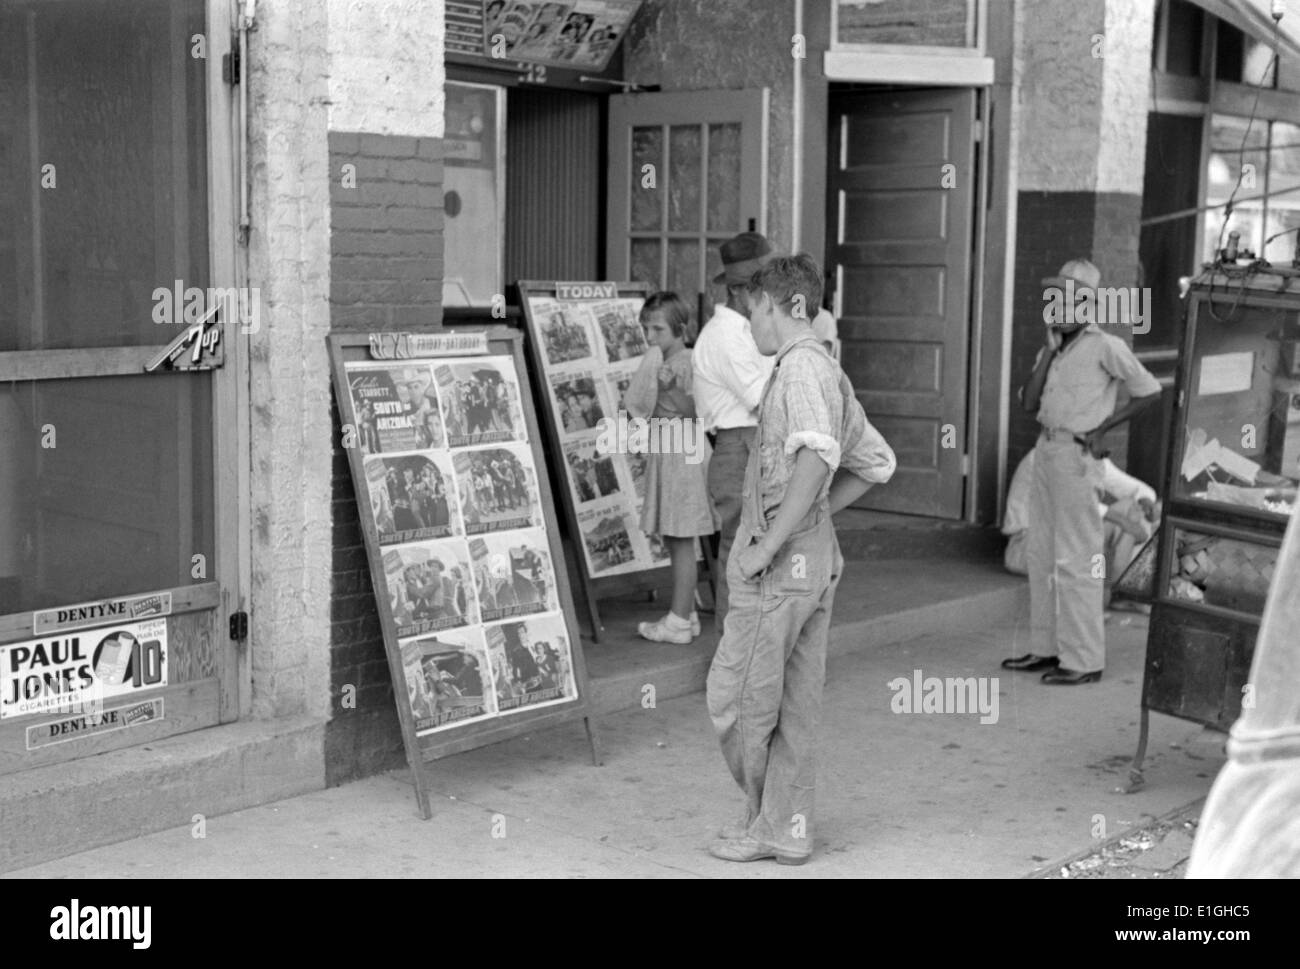 Children looking at posters in front of movie, Saturday, Steele, Missouri 1938 - Stock Image